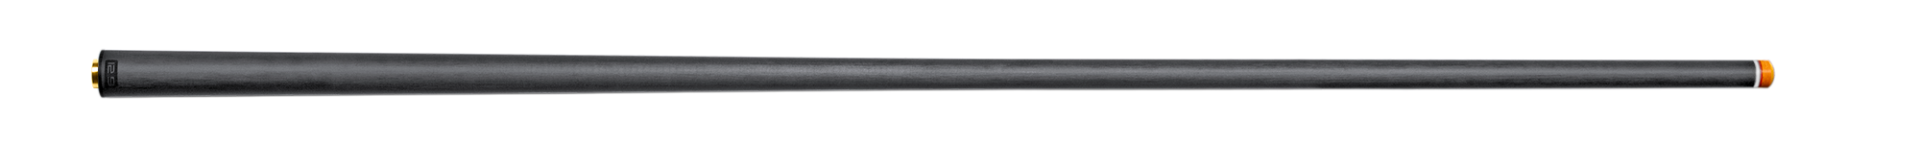 Predator REVO 12.9 mm Shaft for Uni-Loc QR Joint - White Vault Plate - Blatt Billiards